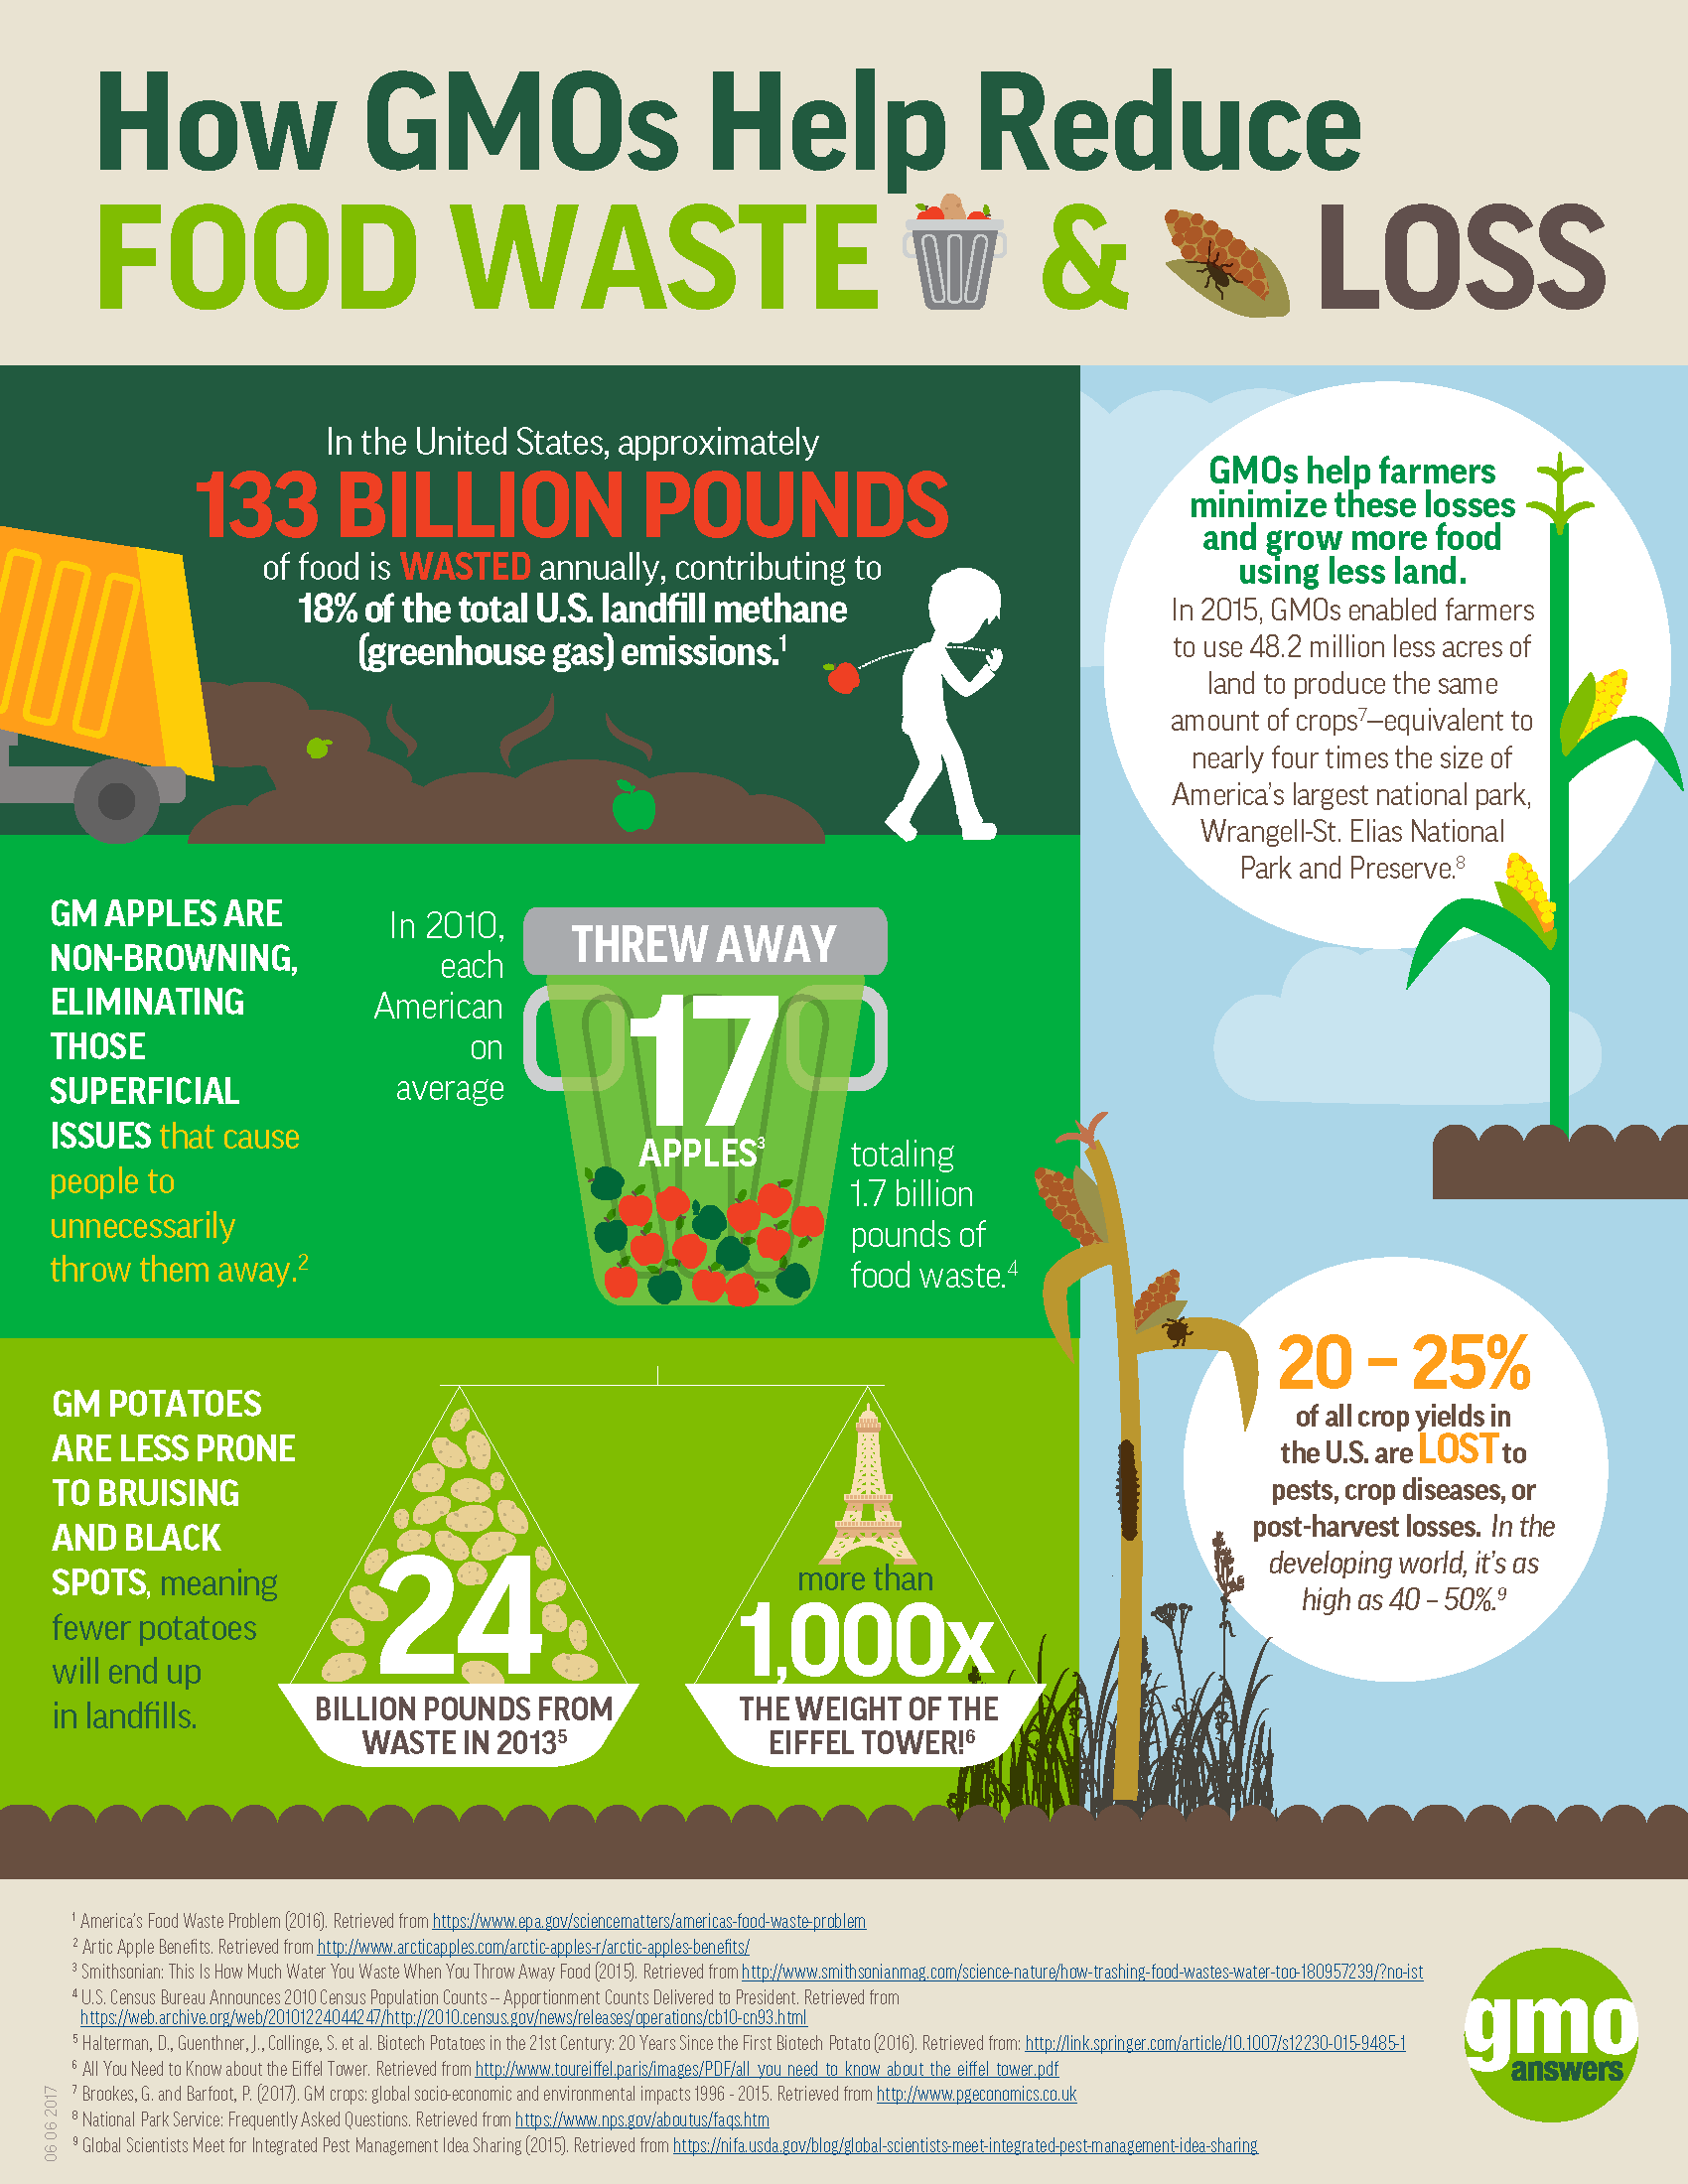 gmos reduce food waste